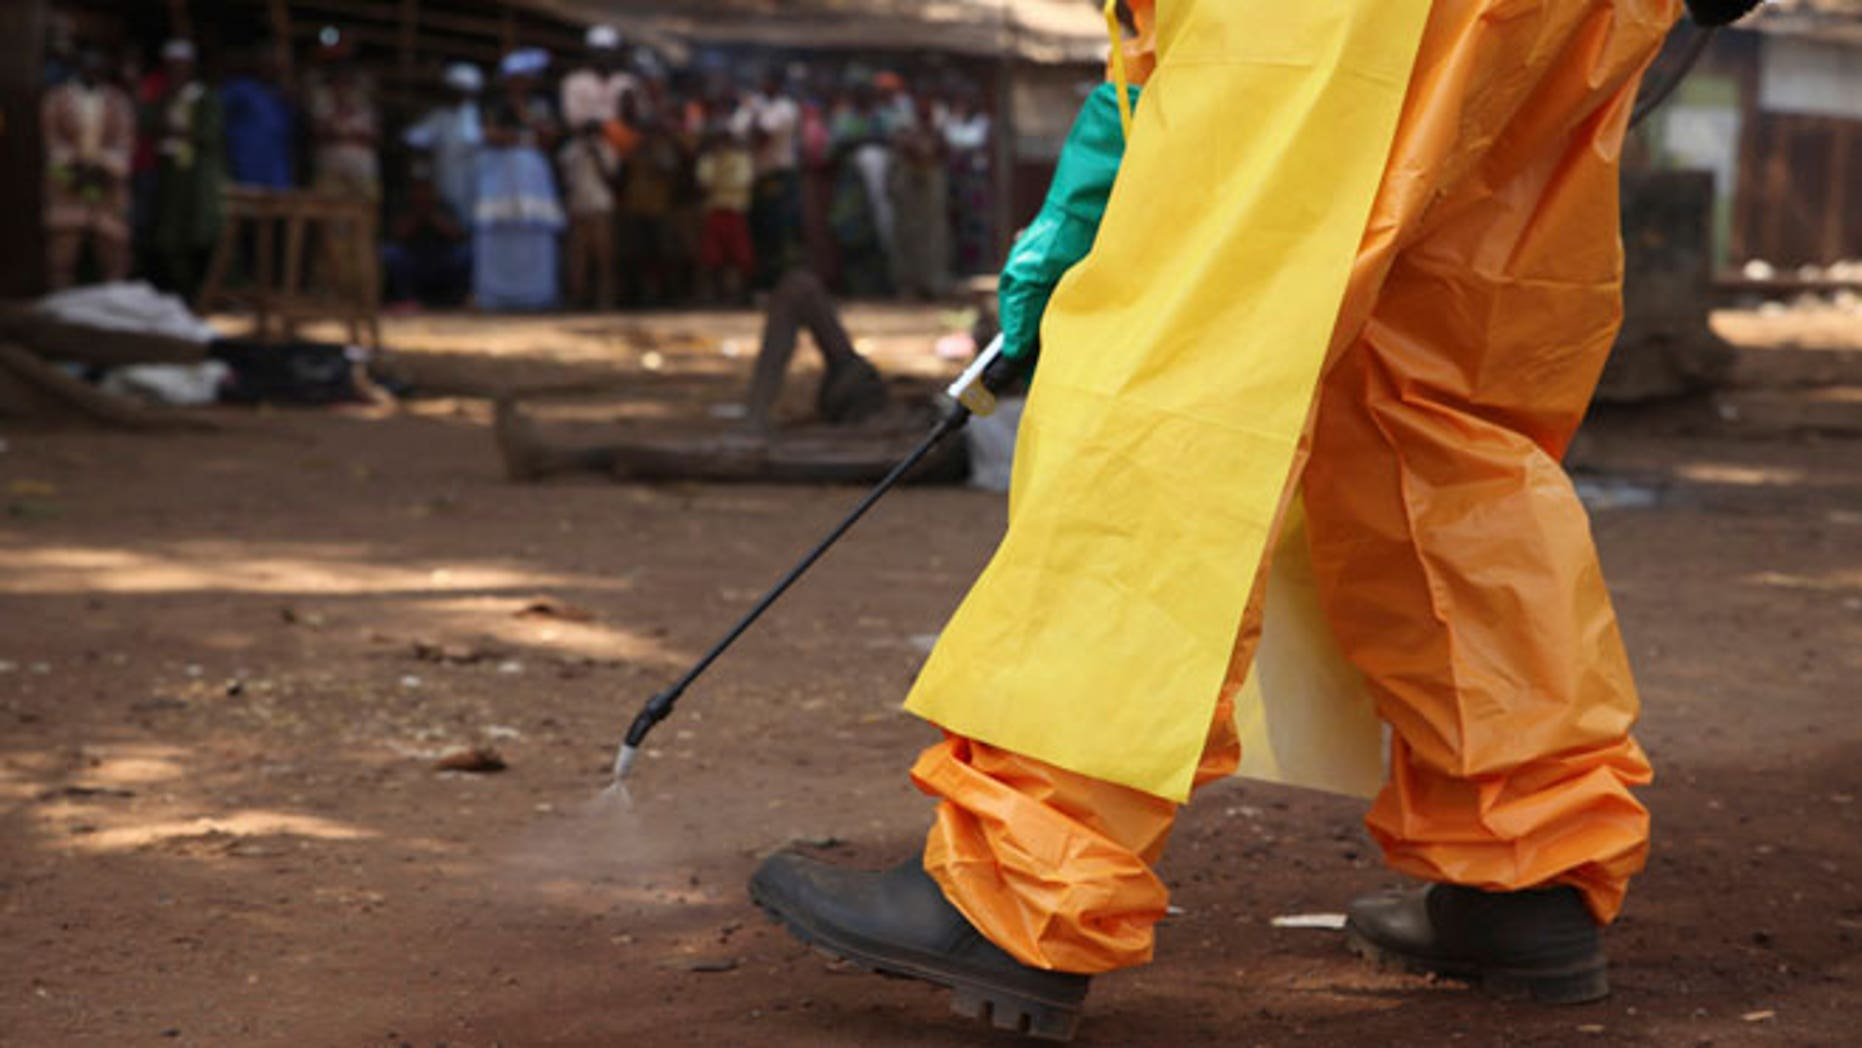 A member of the French Red Cross disinfects the area around a motionless person suspected of carrying the Ebola virus as a crowd gathers in Forecariah January 30, 2015. Health officials botched more than 20 Ebola blood tests in January and February which led to the release of at least four positive patients, two of whom later died, Guinea's anti-Ebola coordinator and other health officials told Reuters.